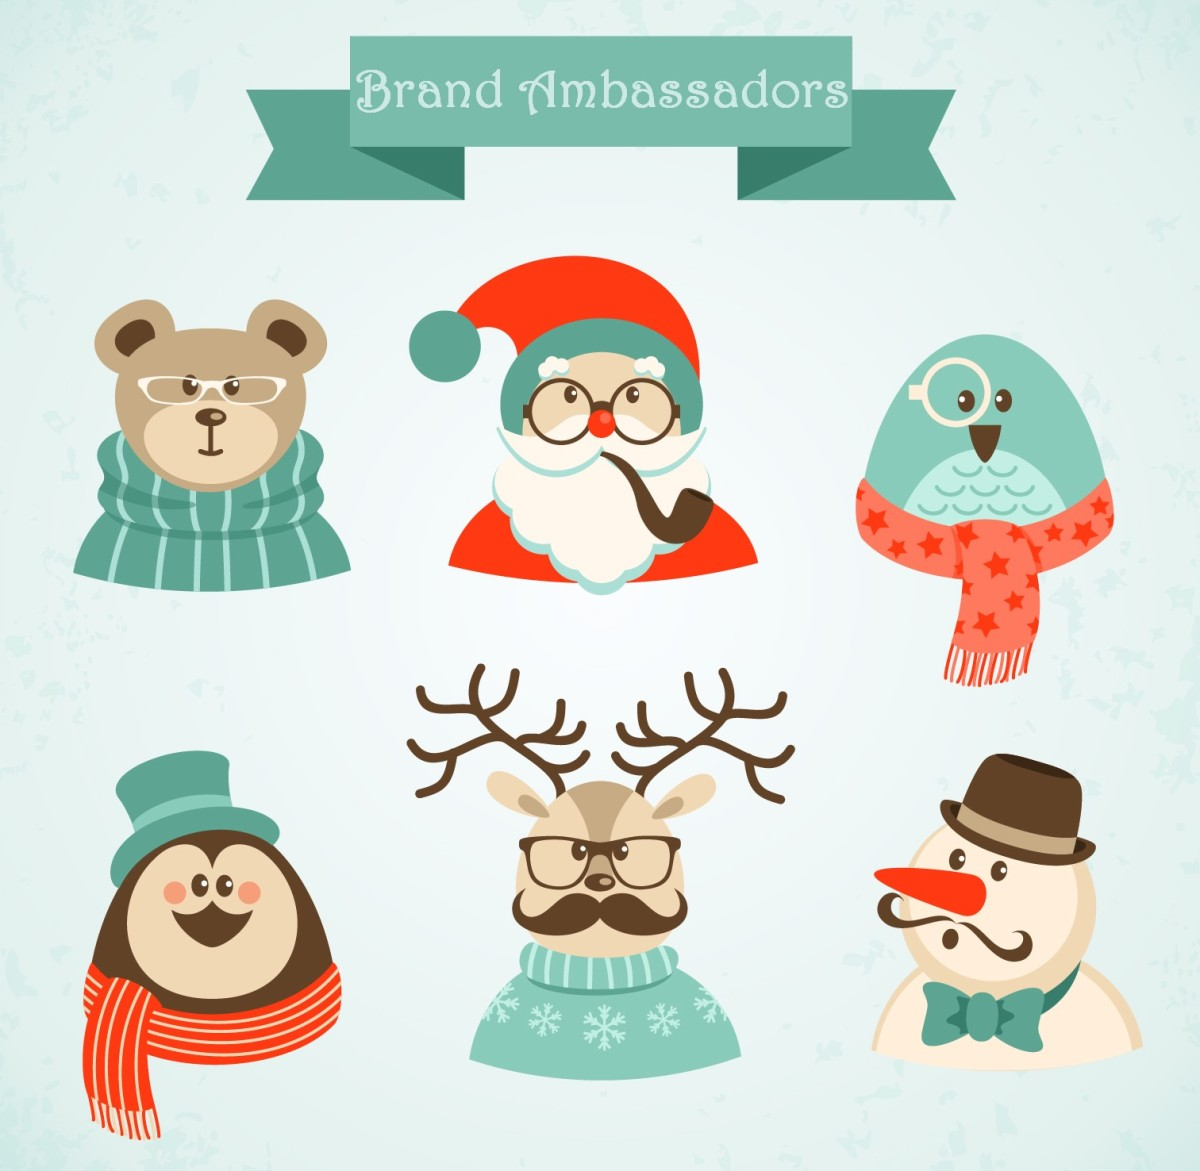 The Holiday Brand Ambassador Guideline